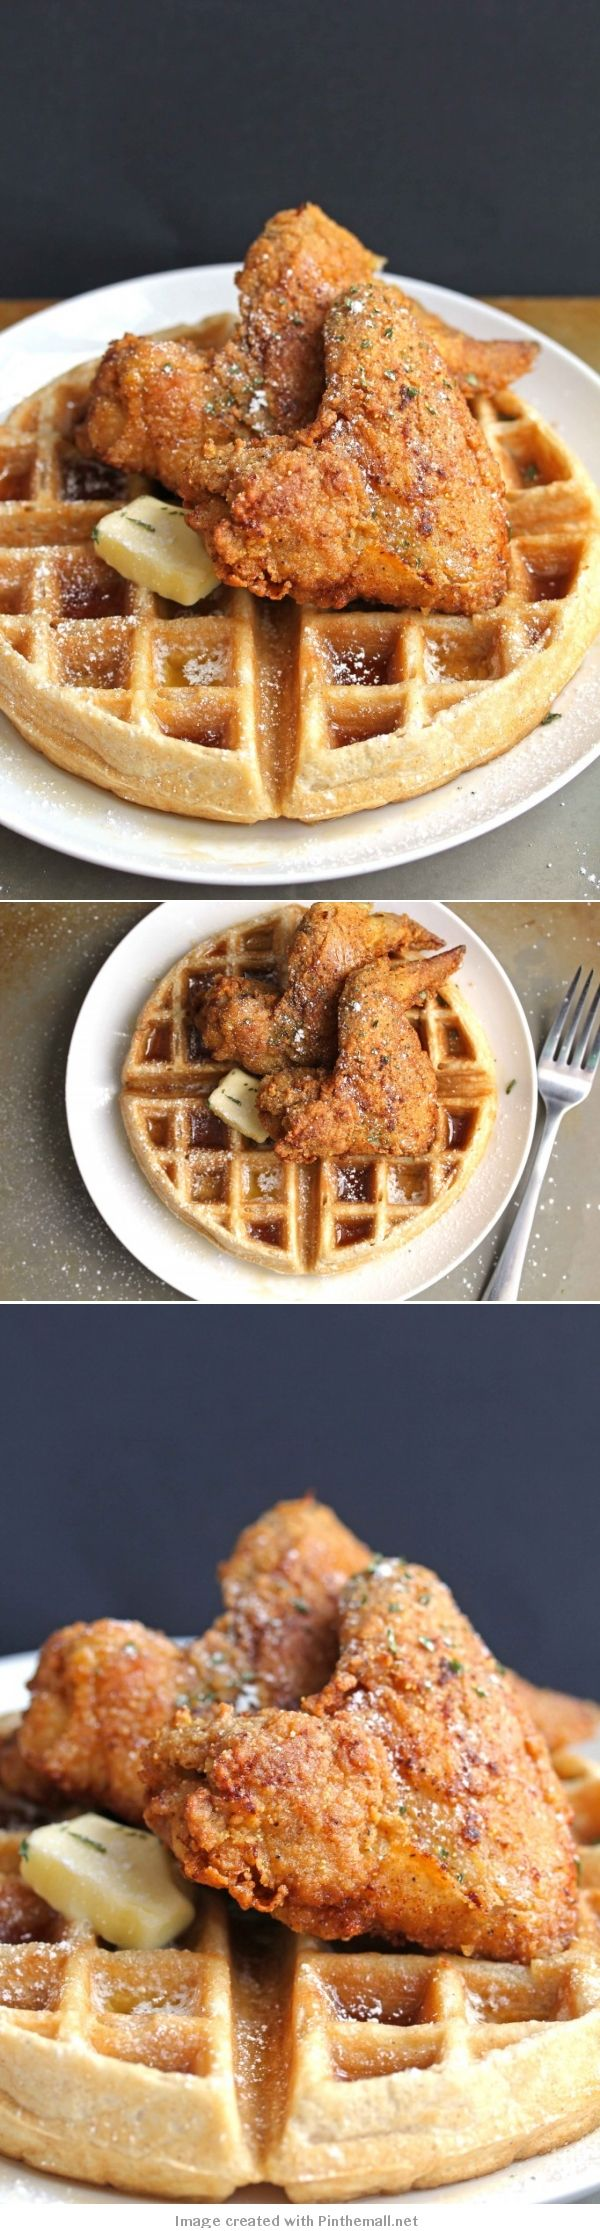 Homemade #Chicken and #Waffles  #friedchicken